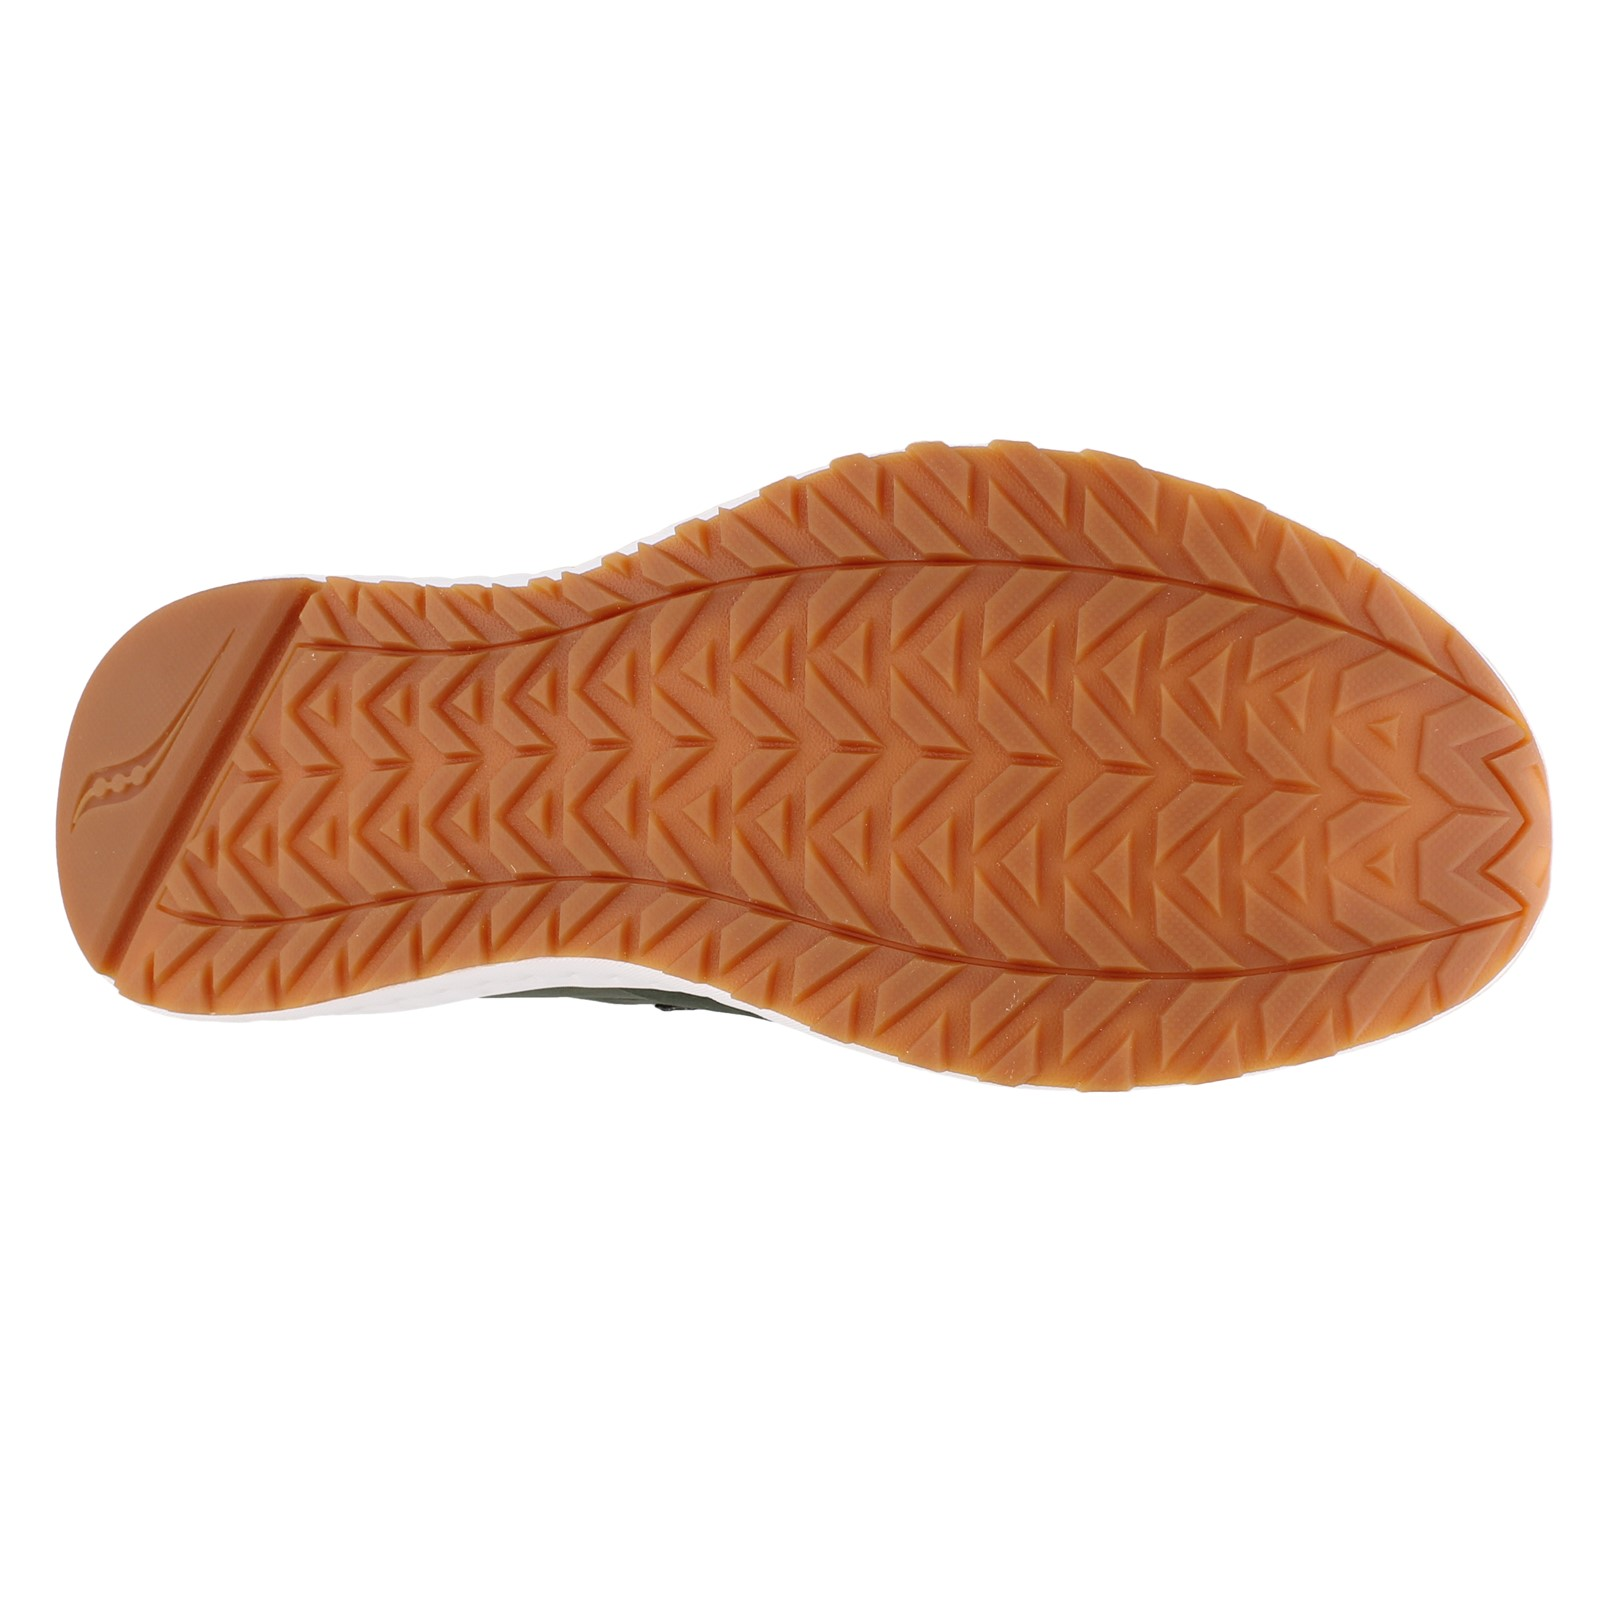 aafcea9a7db8 Next. add to favorites. Men s Saucony